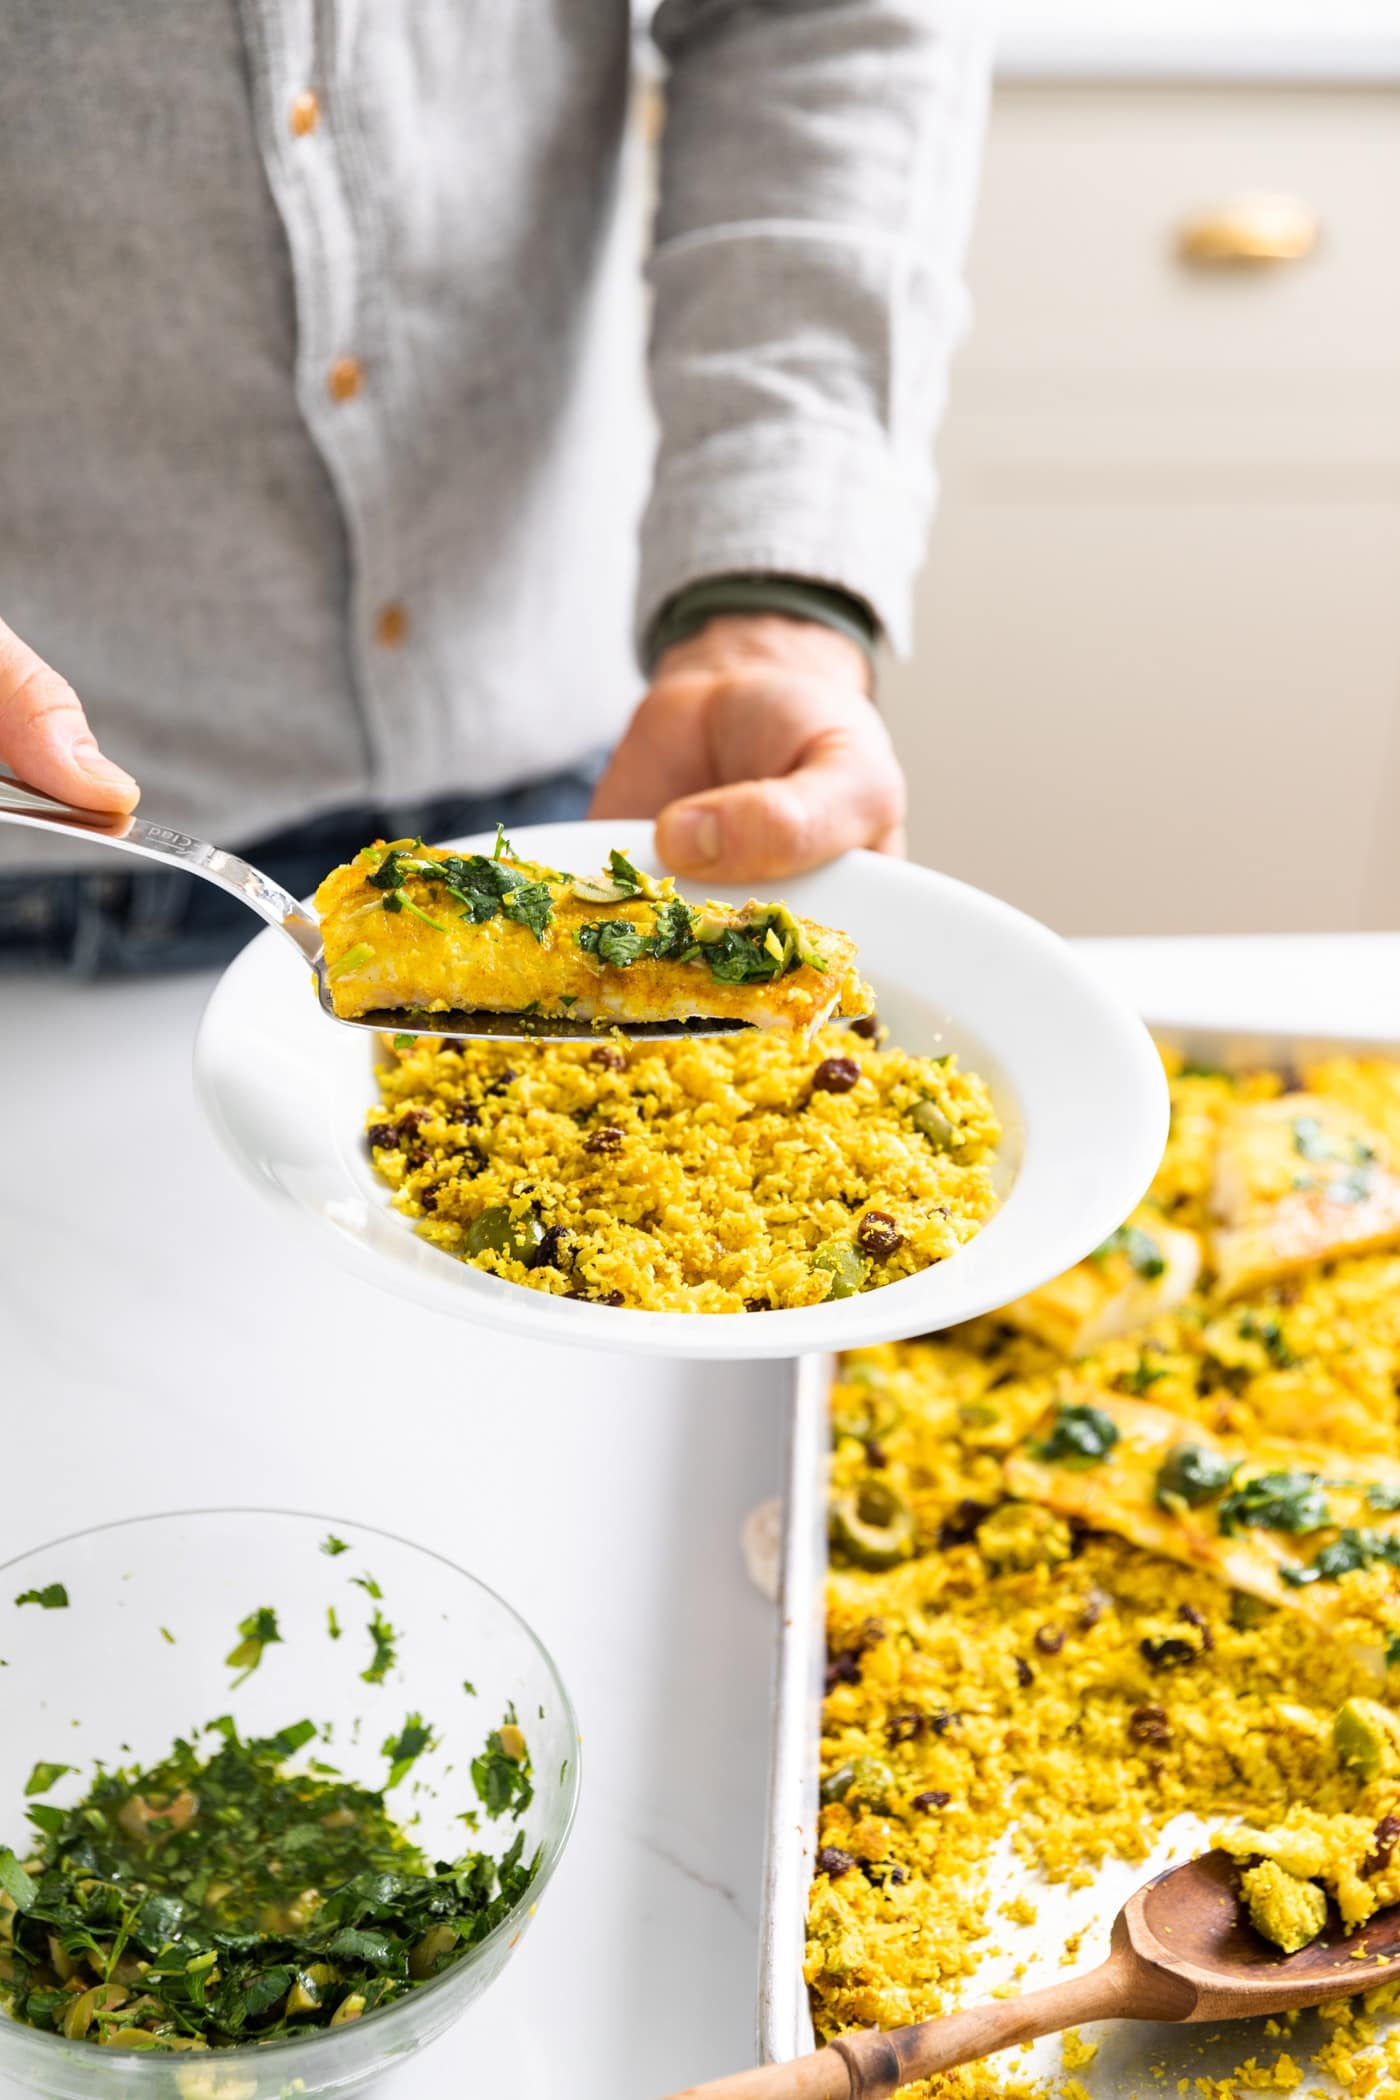 White plate held by man wearing a gray button down shirt putting piece of fish onto bed of yellow colored cauliflower rice